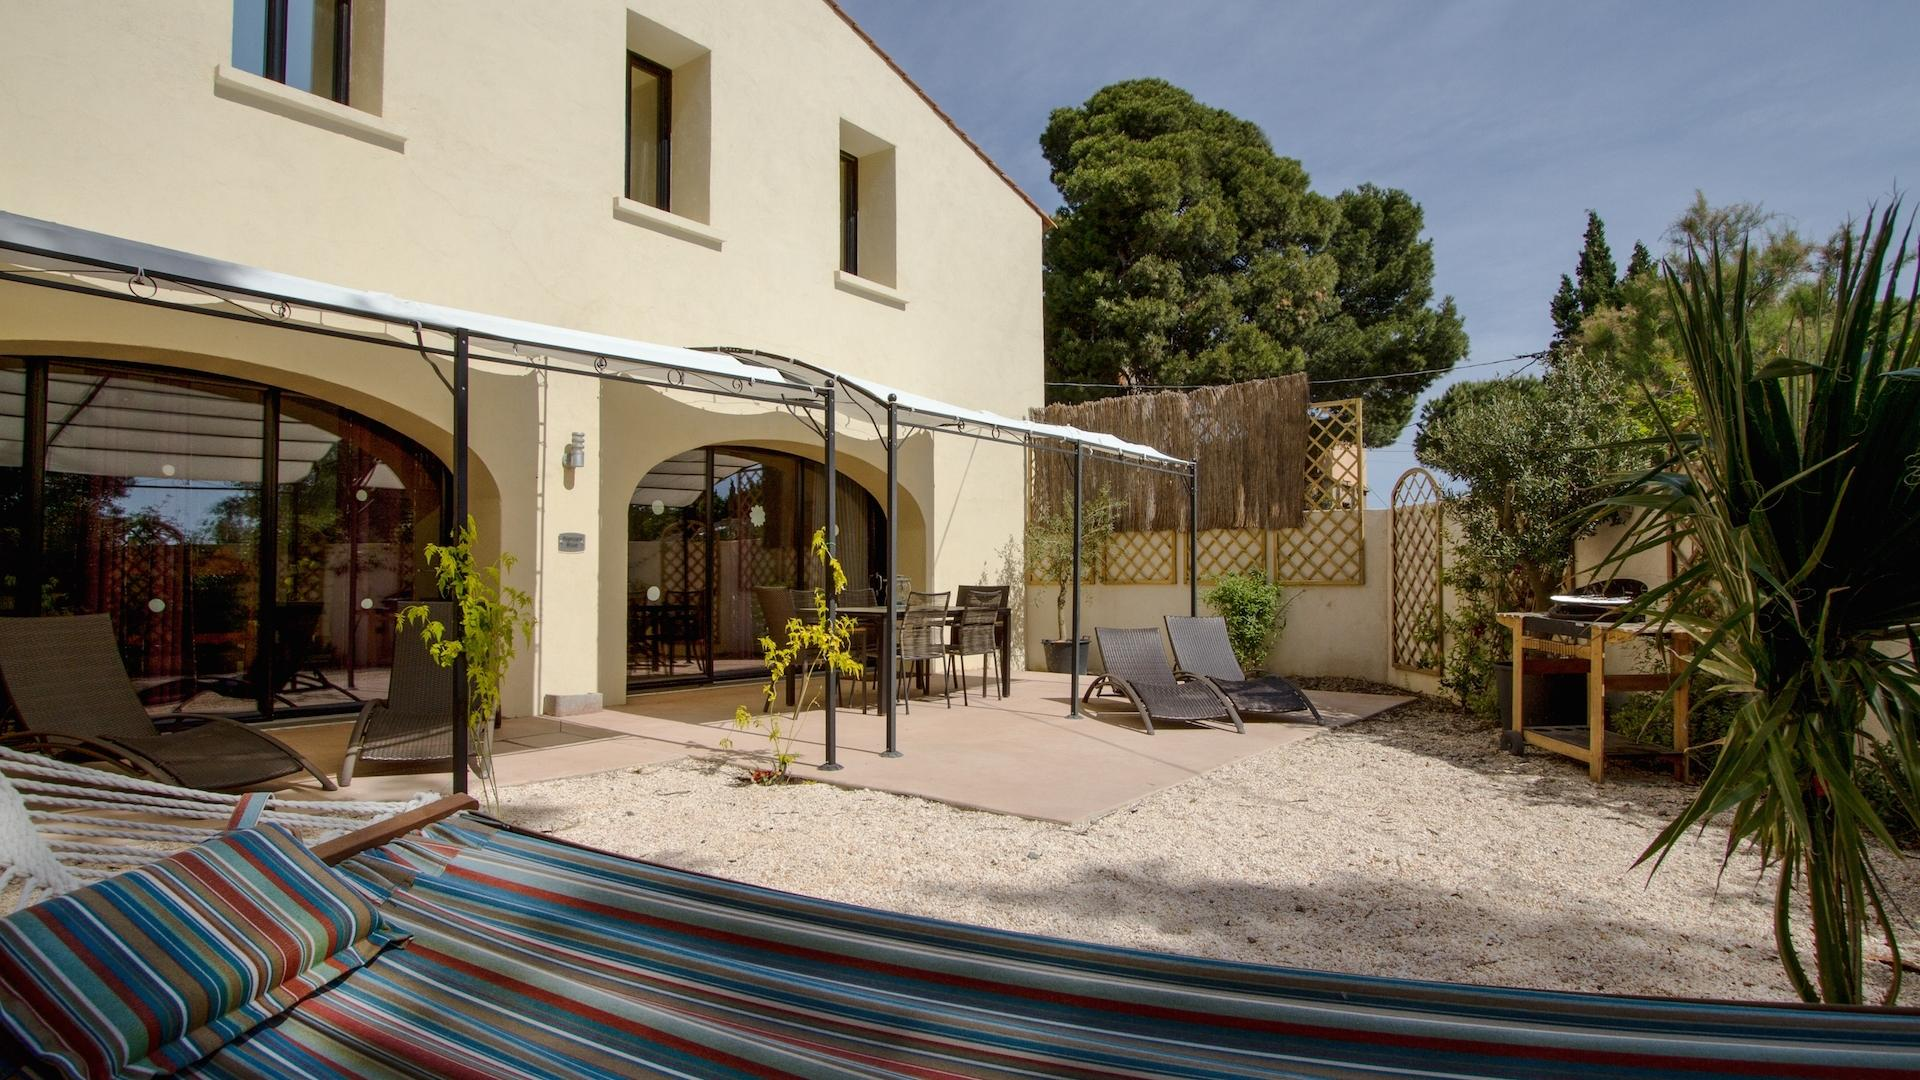 3 bedroom child-friendly villa languedoc rousillon, france - PDV